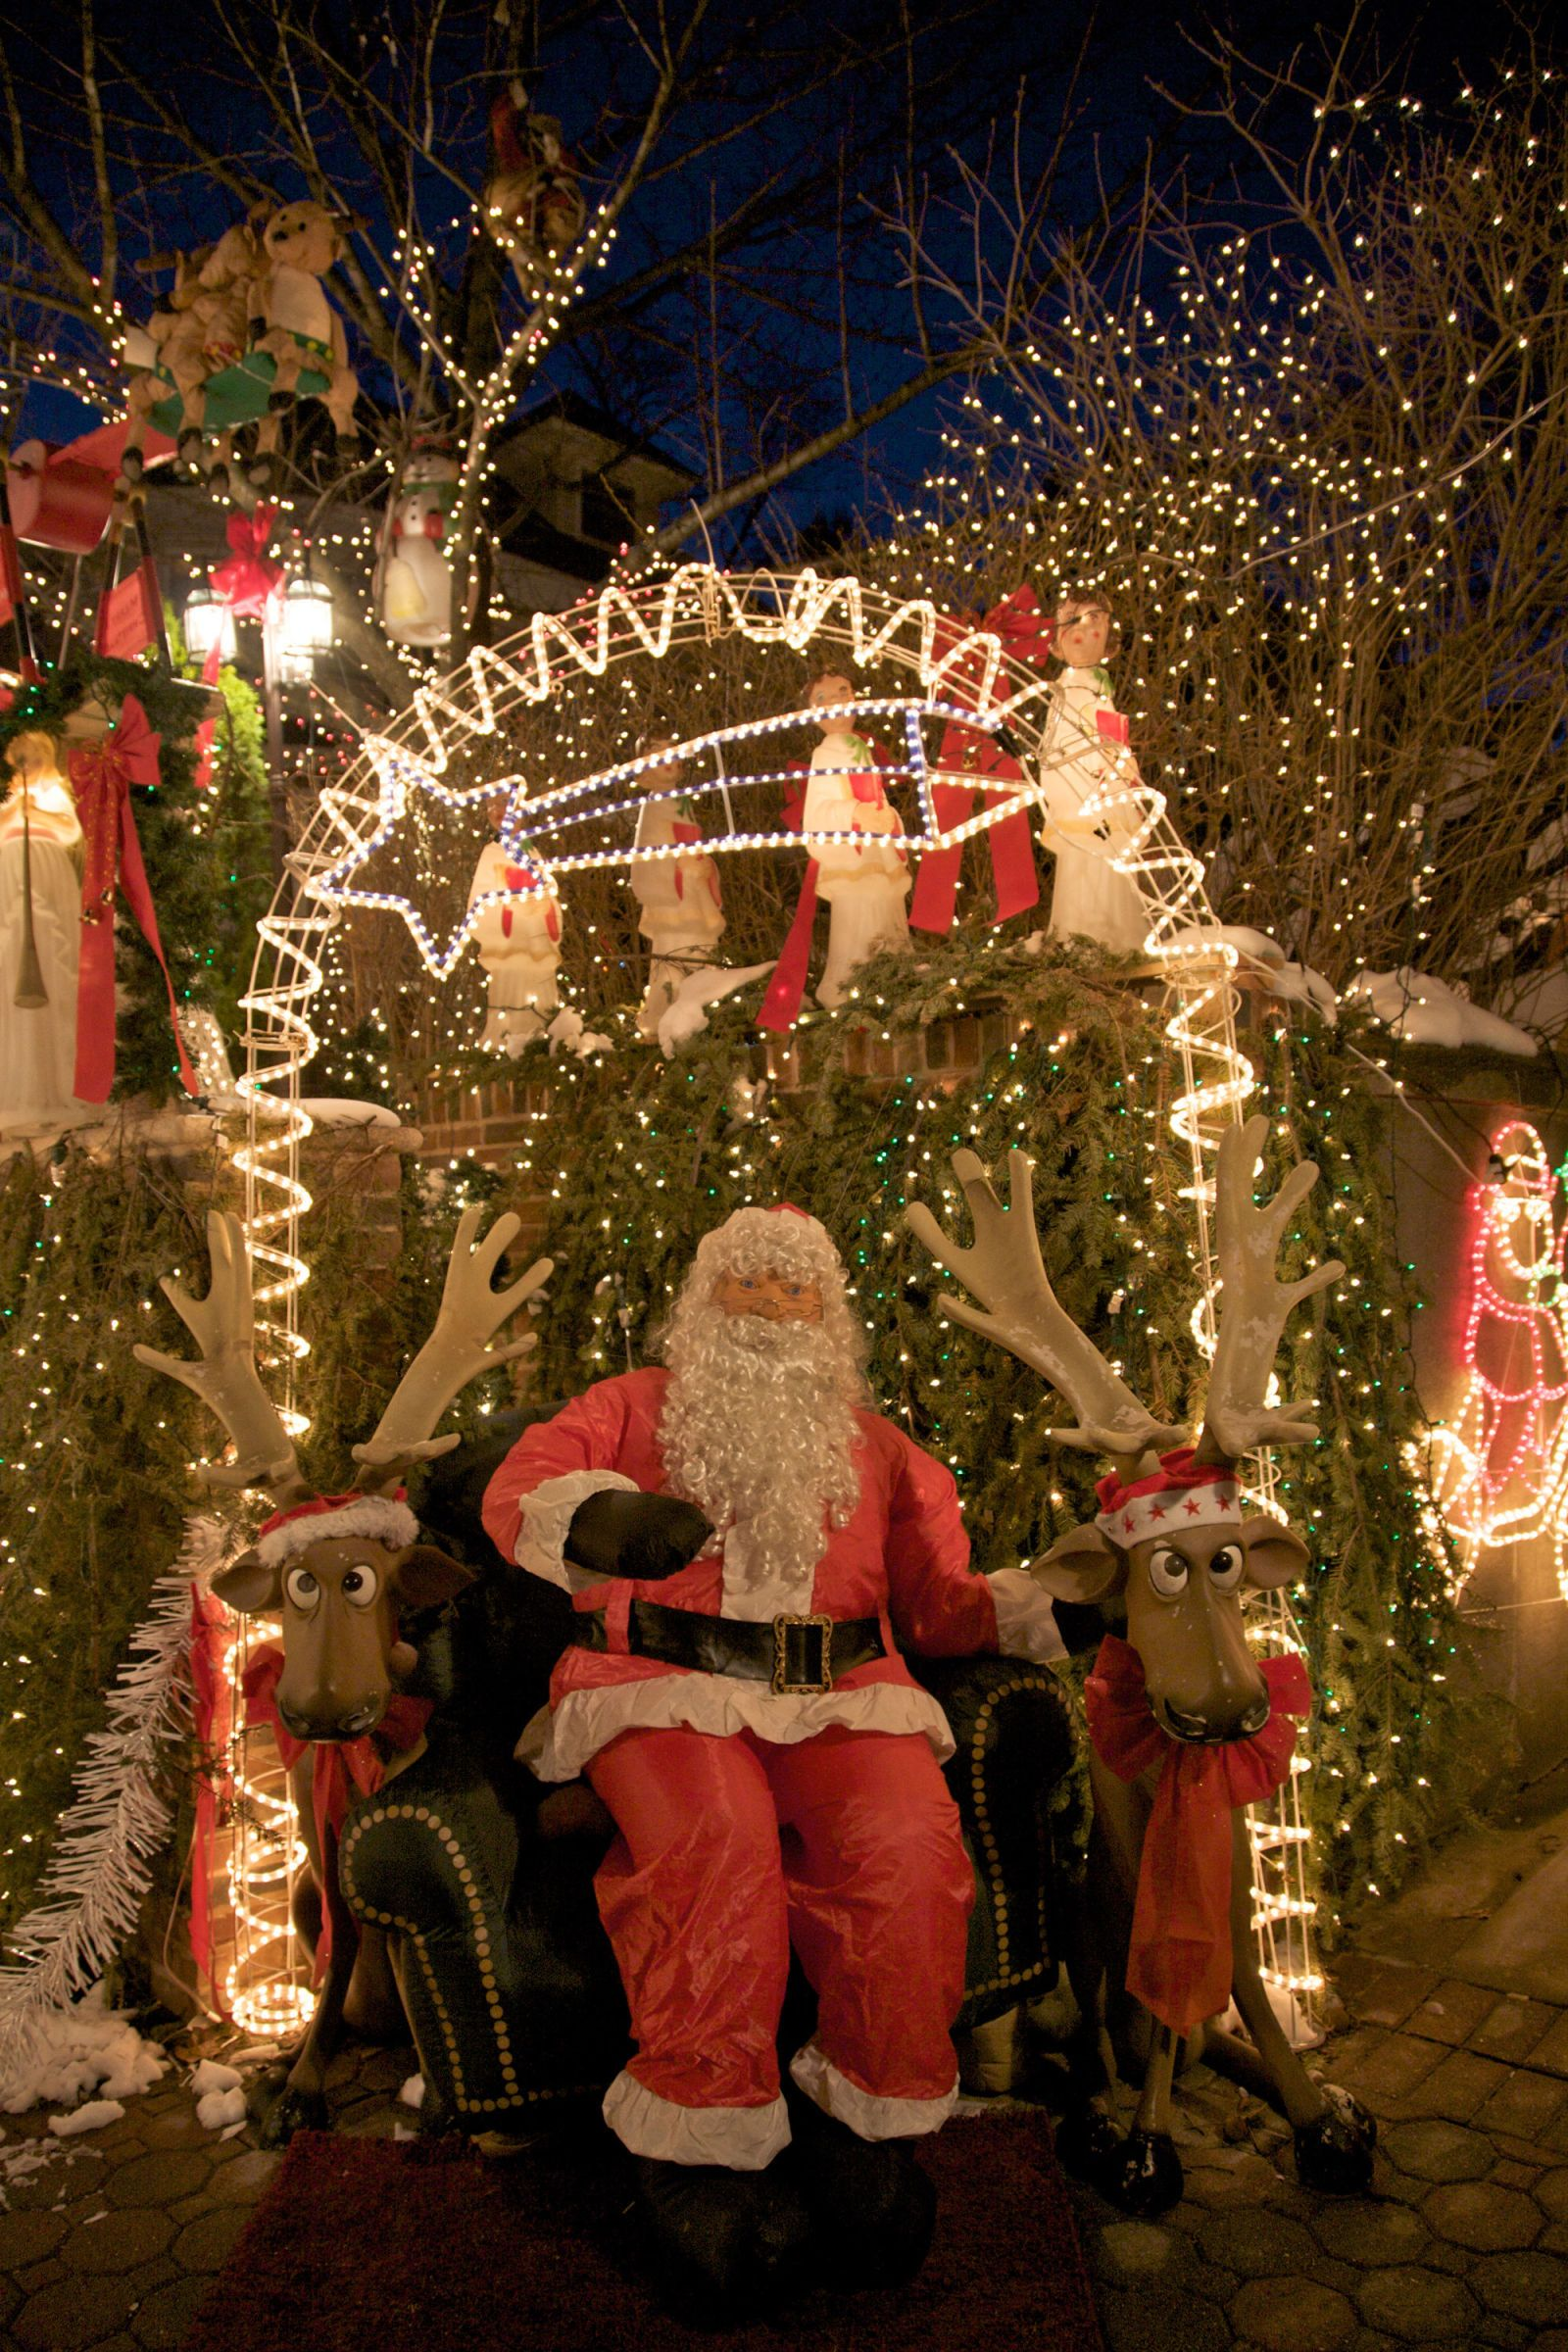 The Best Christmas Towns to Visit for the Holidays | Unique places ...